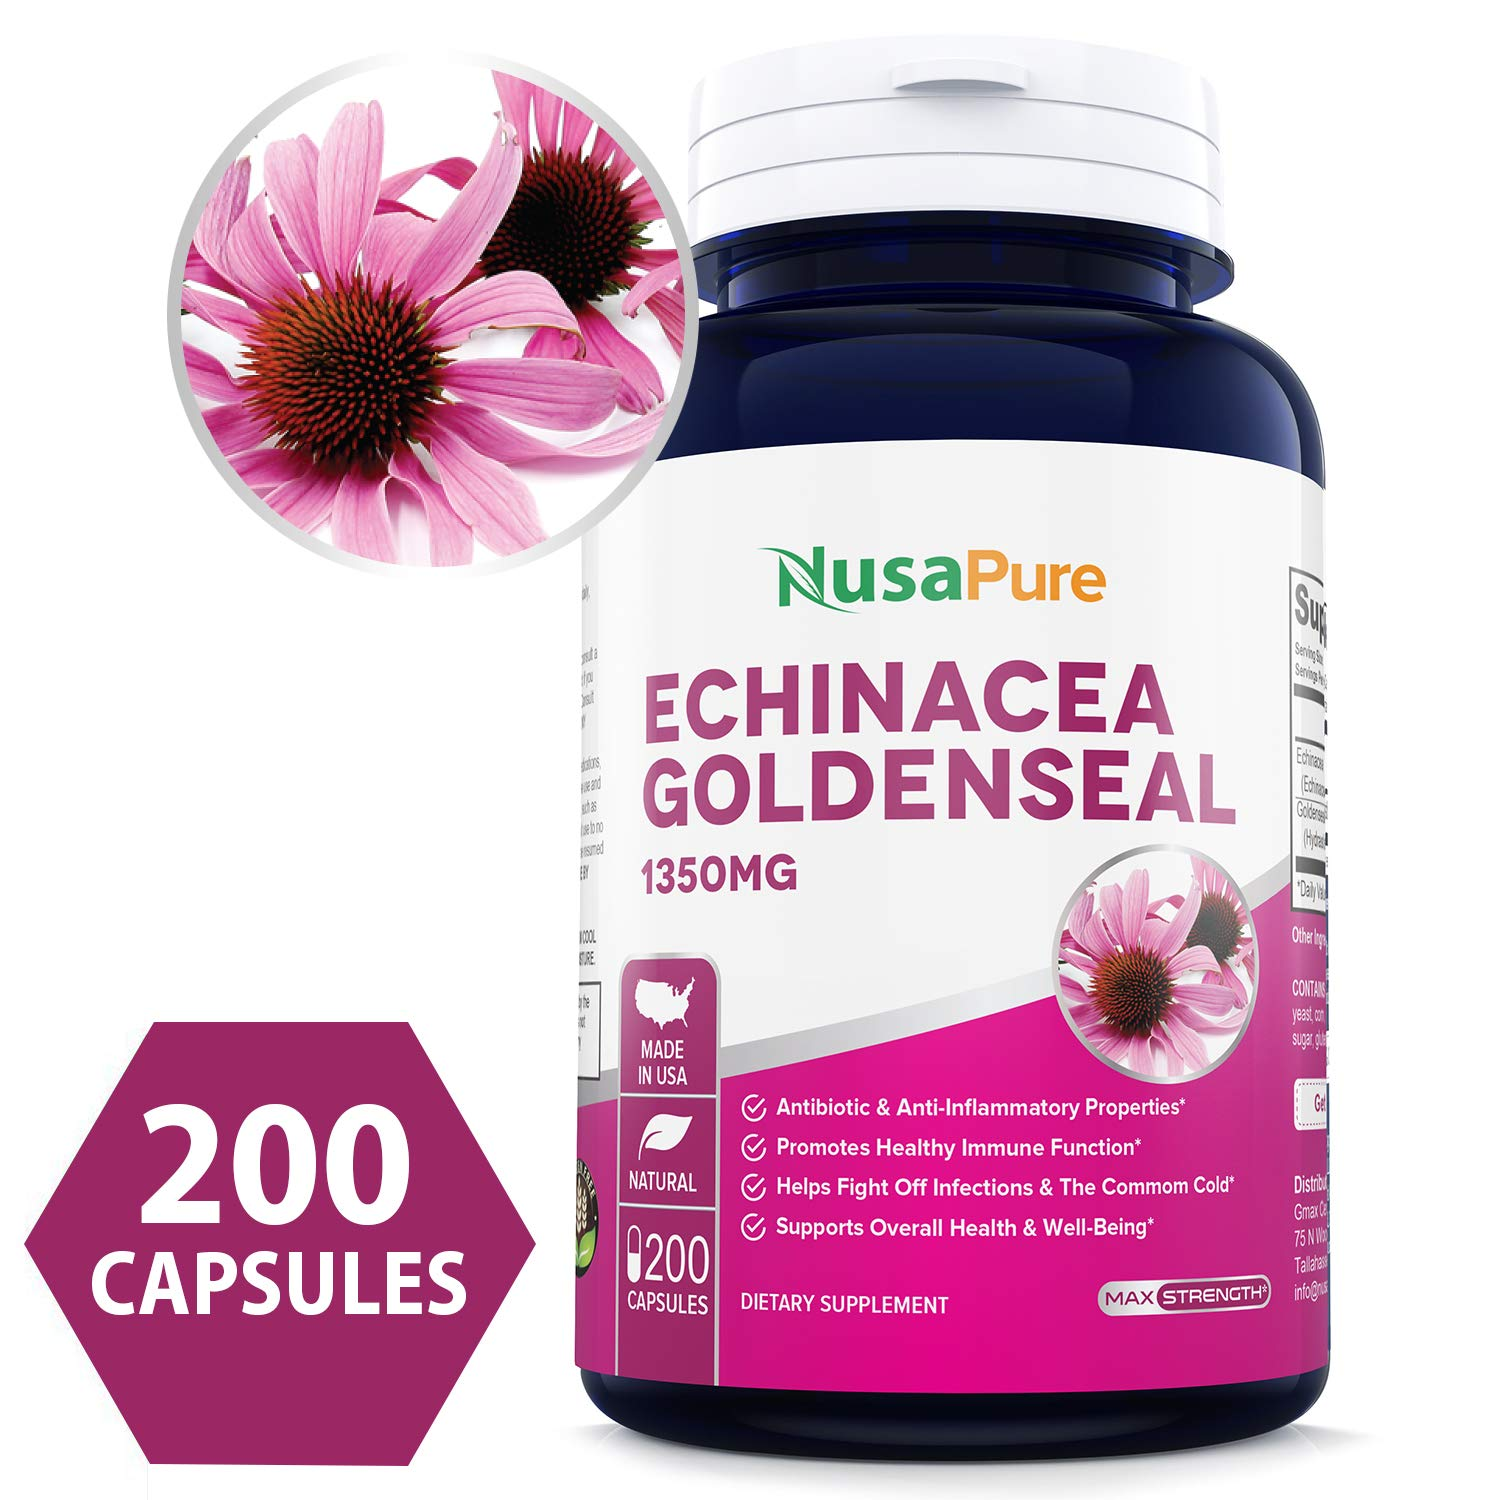 Echinacea Goldenseal 1350mg 200caps (Non-GMO & Gluten Free) Supports Healthy Immune Function and Overall Well-Being